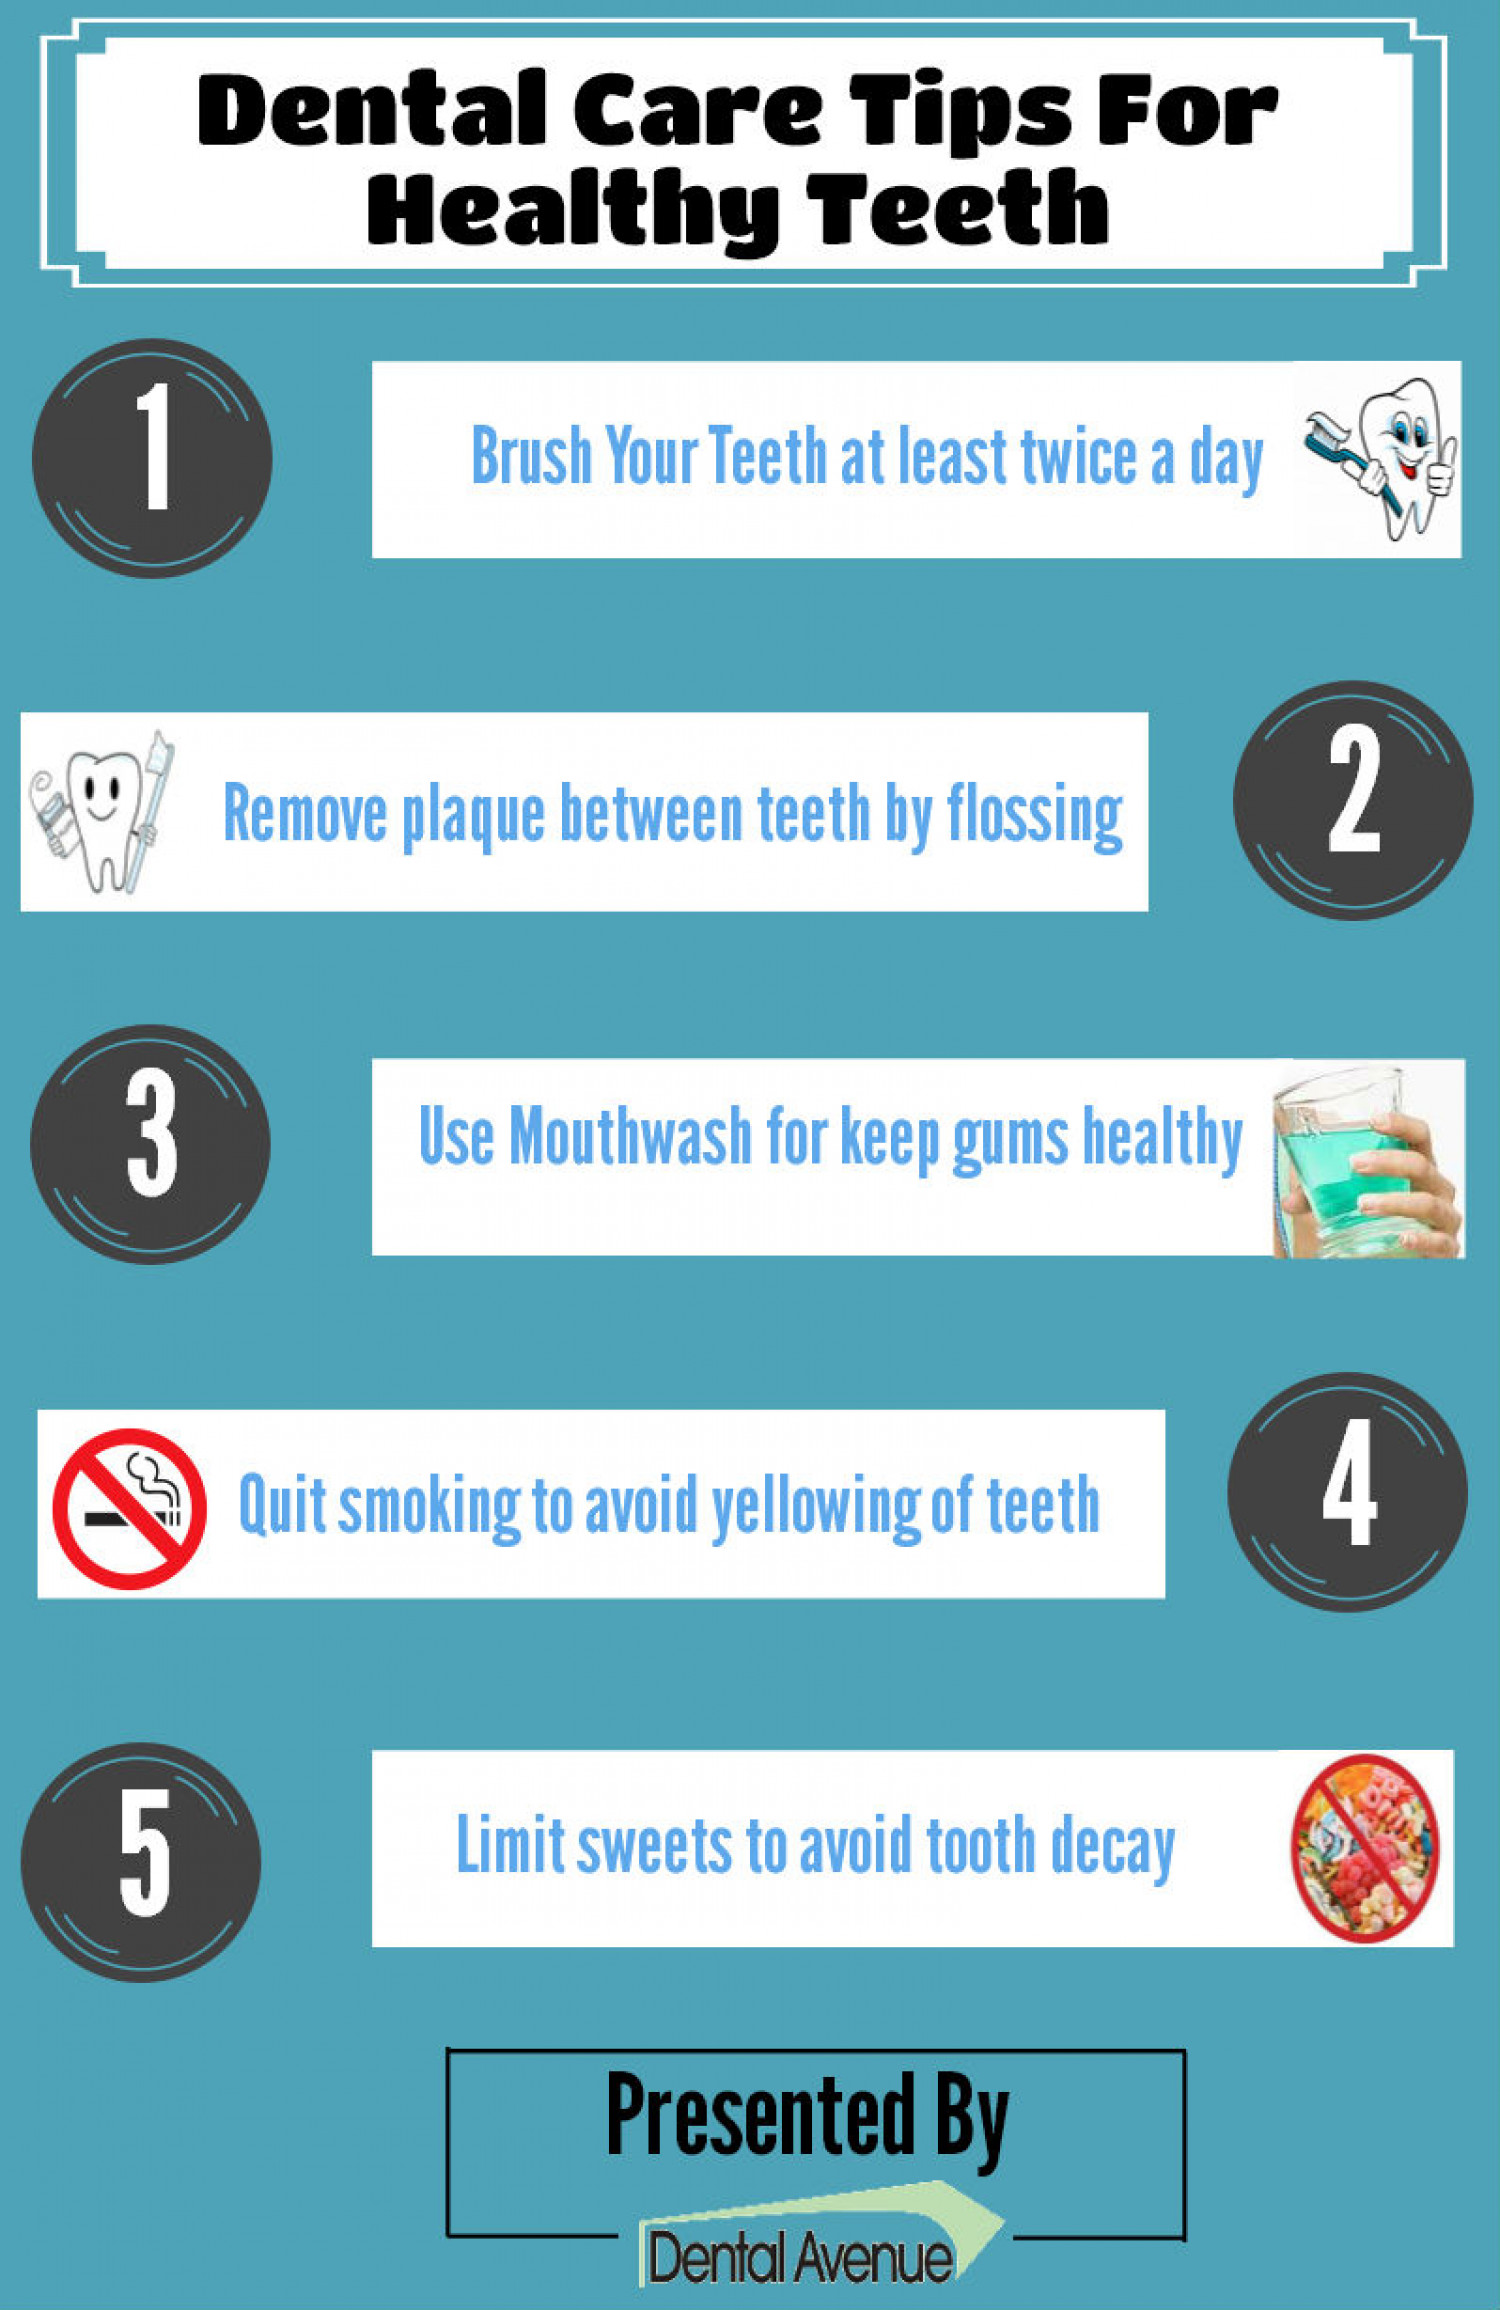 dental-care-tips-for-healthy-teeth_569f3cf9ed53b_w1500.jpg